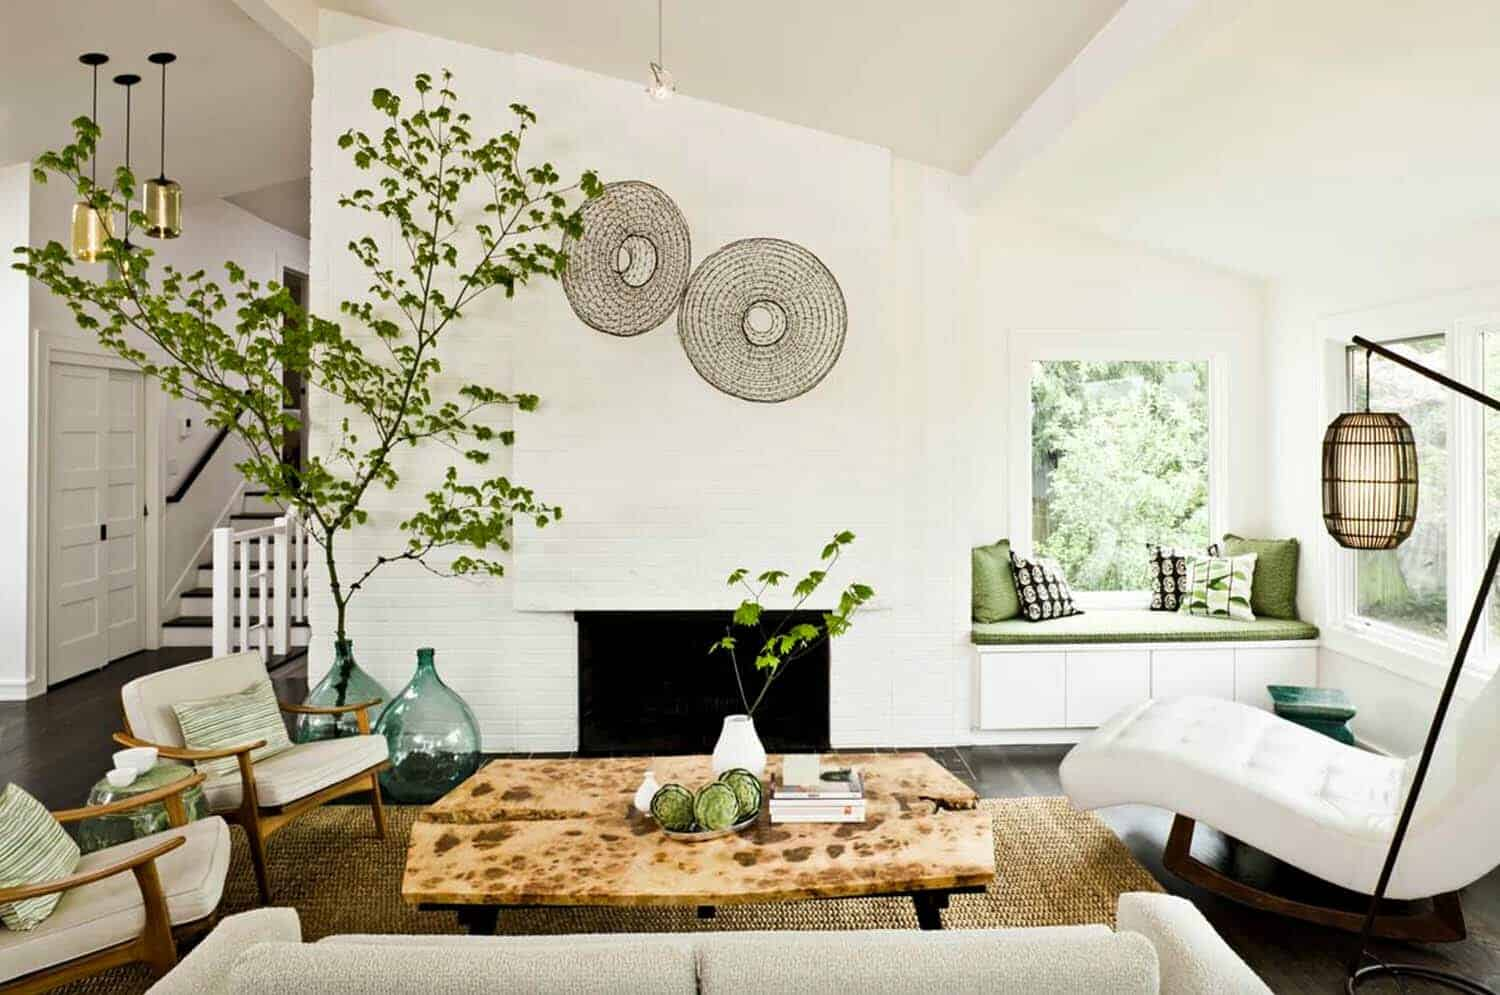 mid century modern living room lighting feng shui color 38 absolutely gorgeous ideas a split level ranch home in portland oregon features this cozy with vintage furnishings see the rest of here